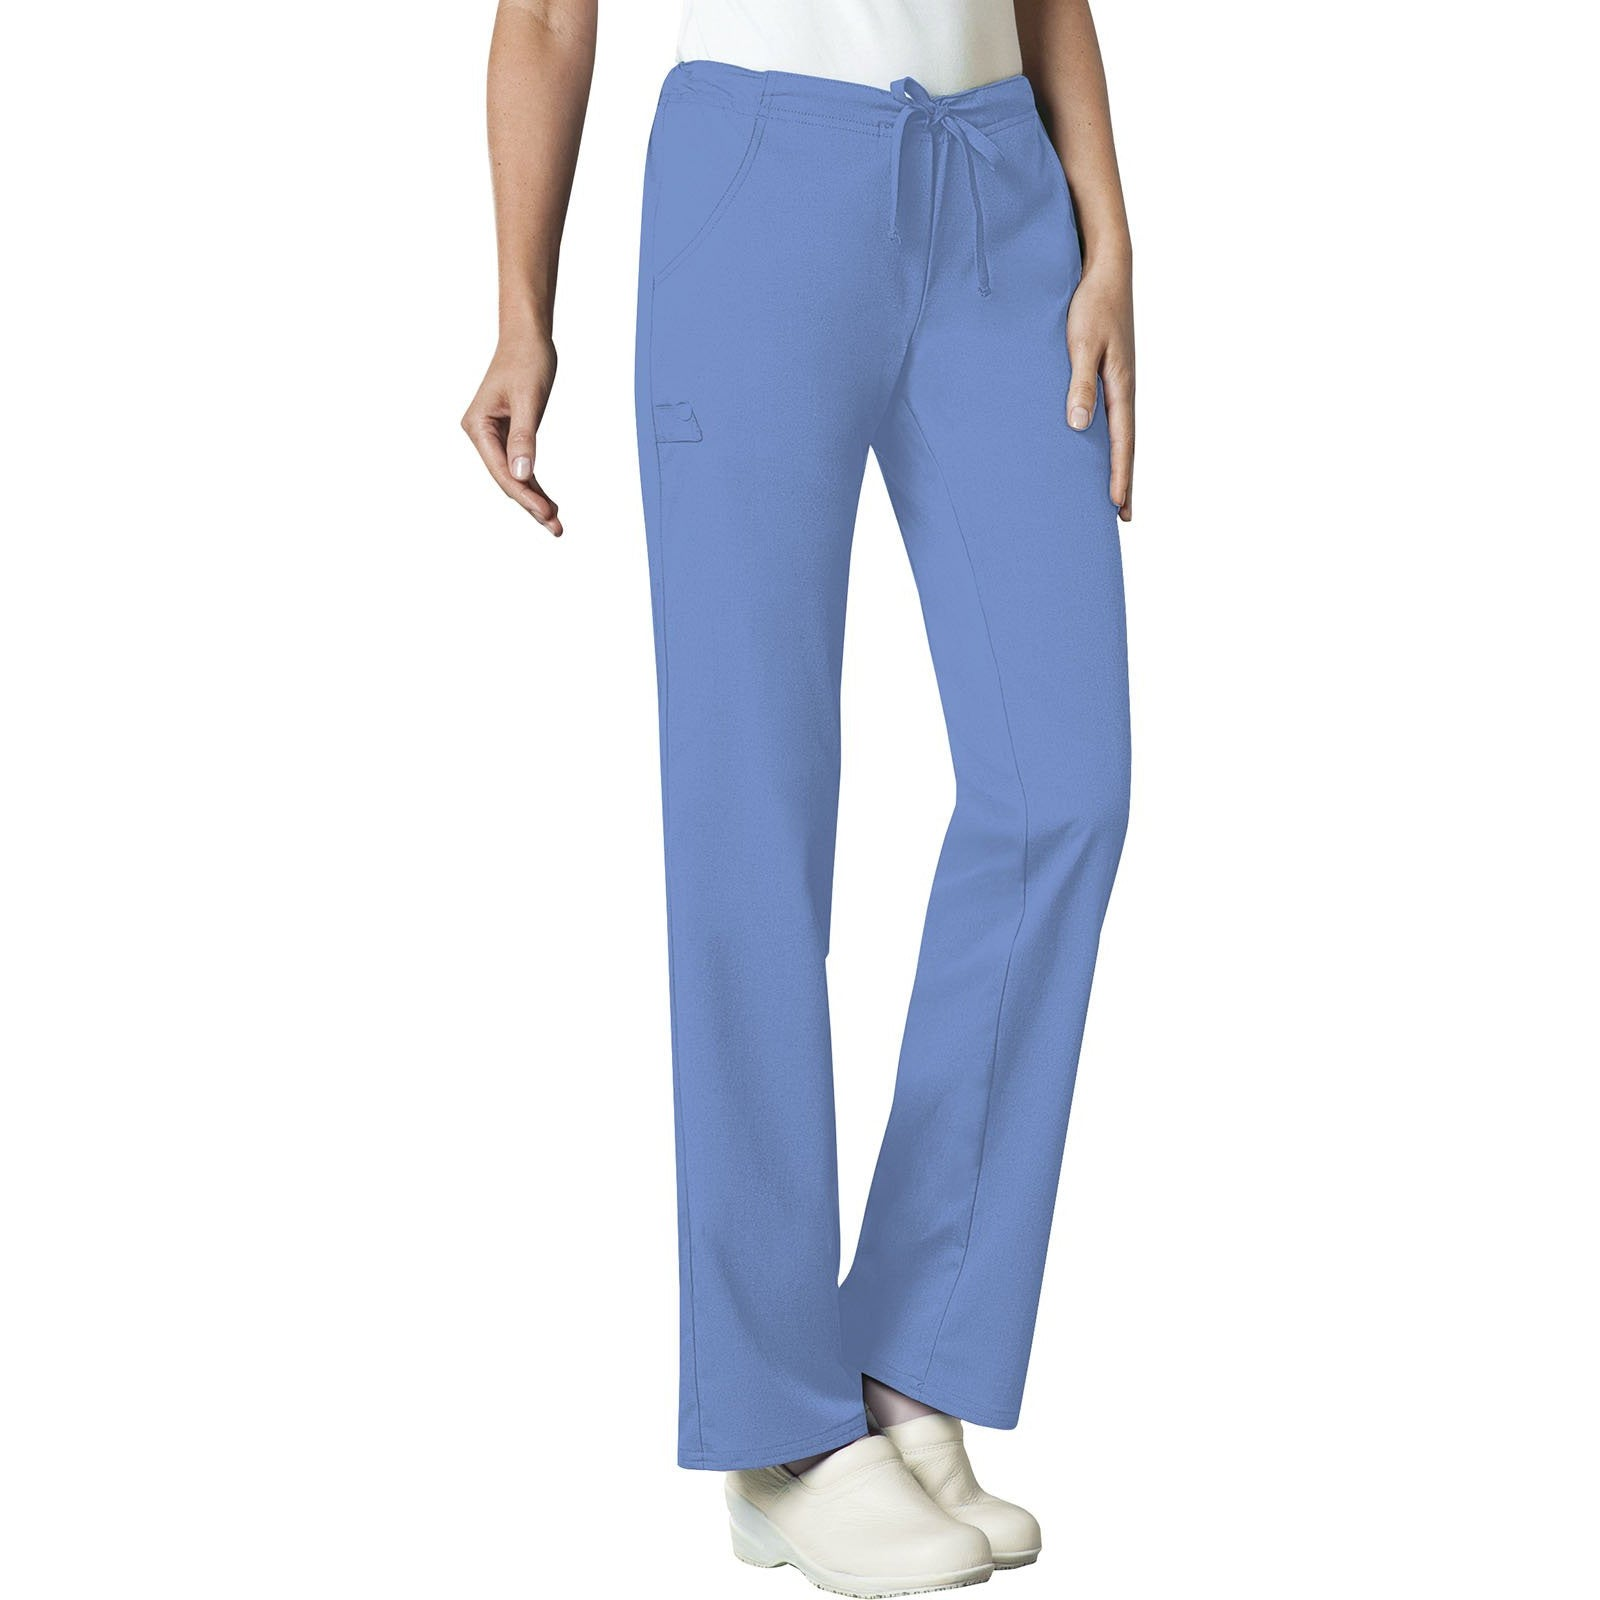 Low Rise Straight Leg Drawstring Pant 1066 (2XL-5XL) INSEAM 30 - 31""